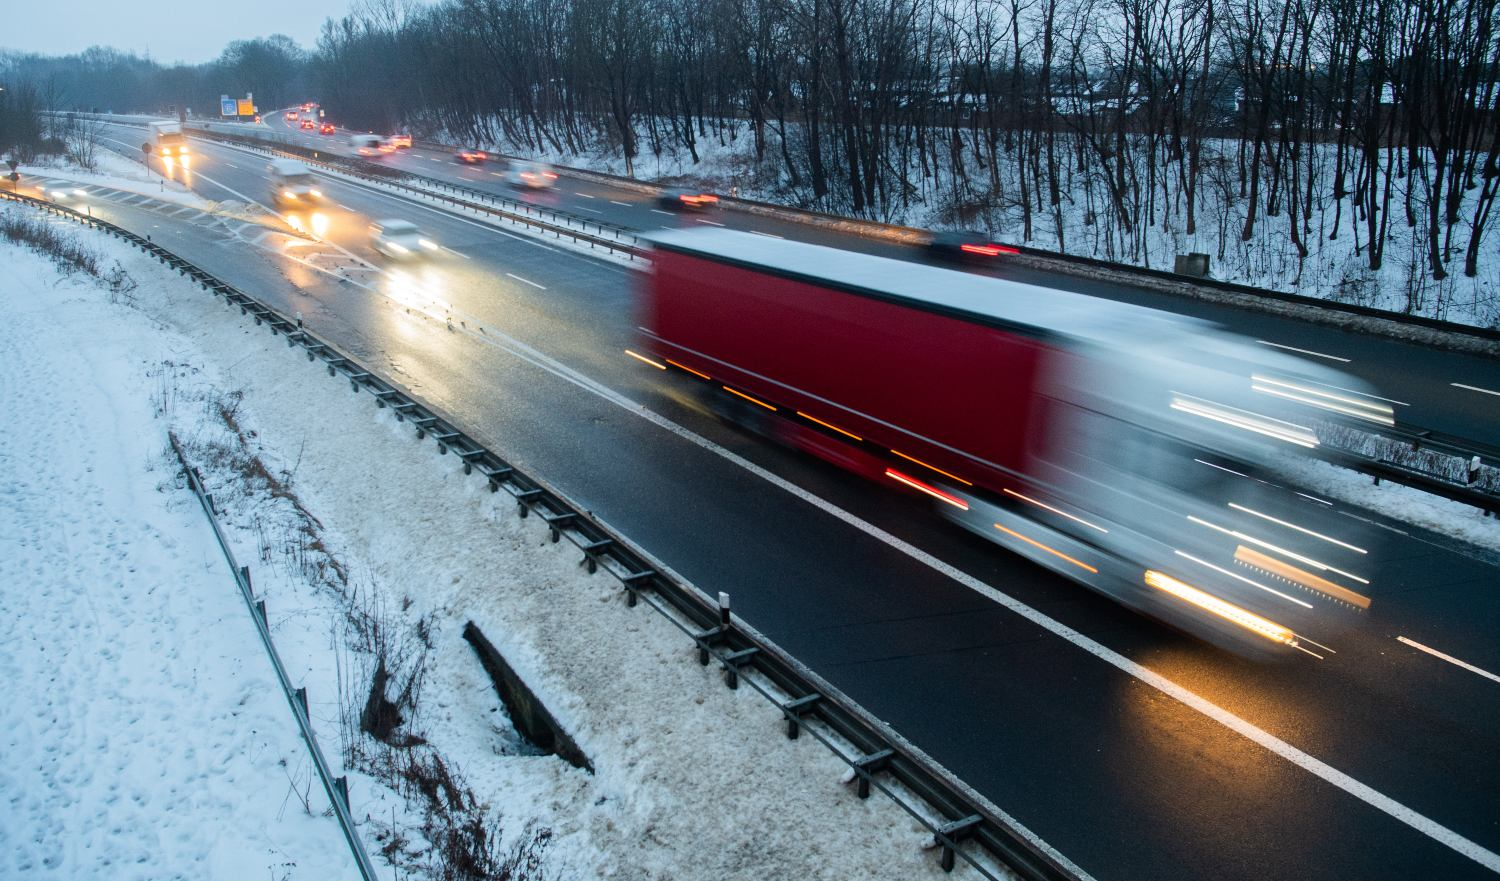 Icy weather causes accidents in Germany as cold spell set to end